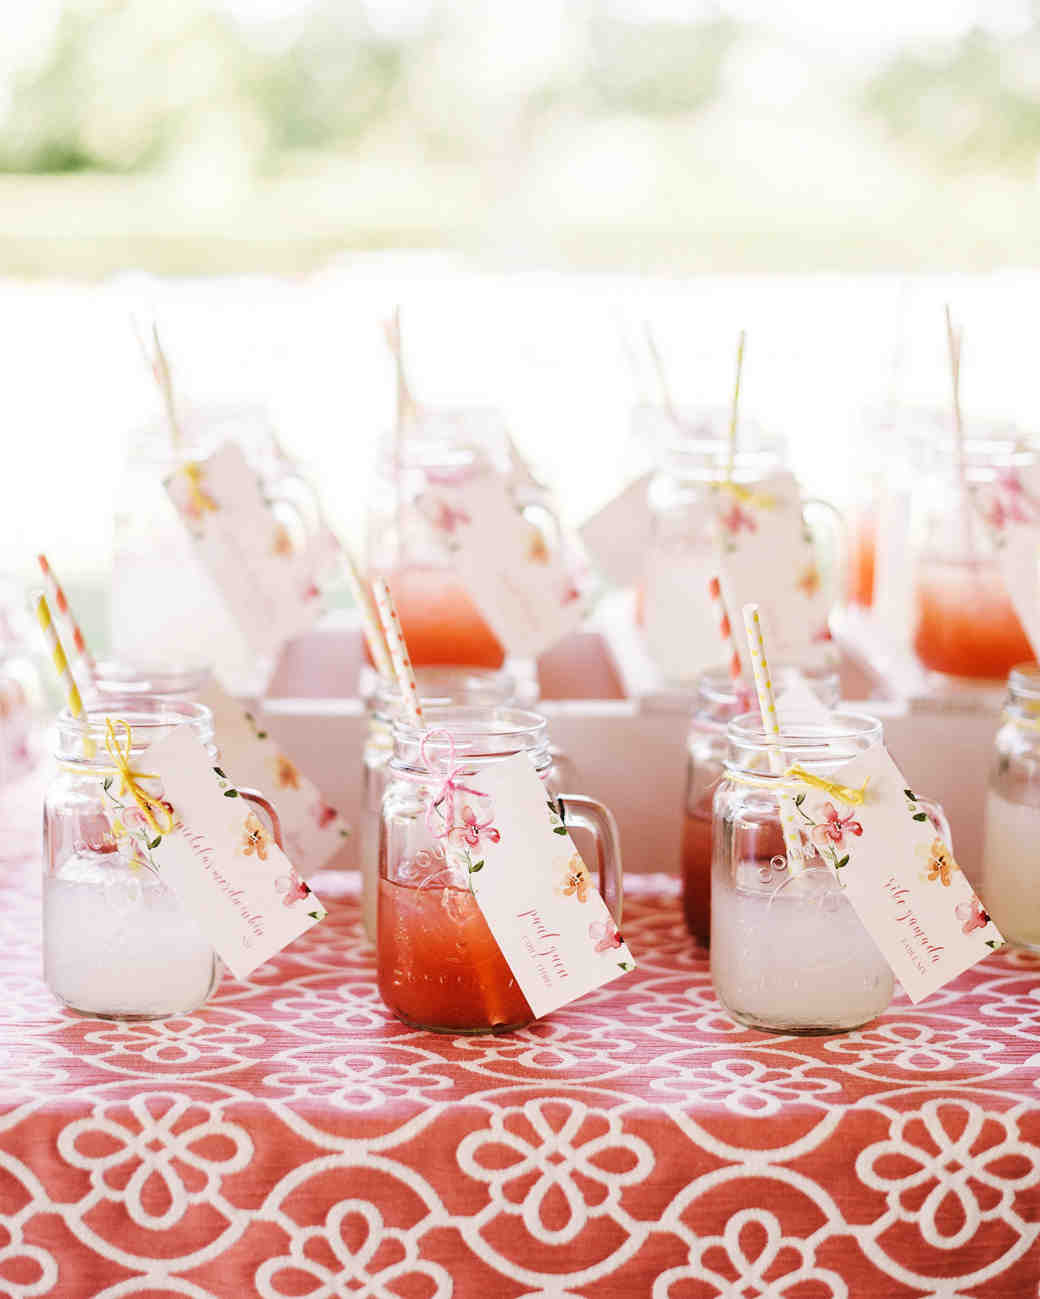 Mason jar wedding favors and signature cocktails